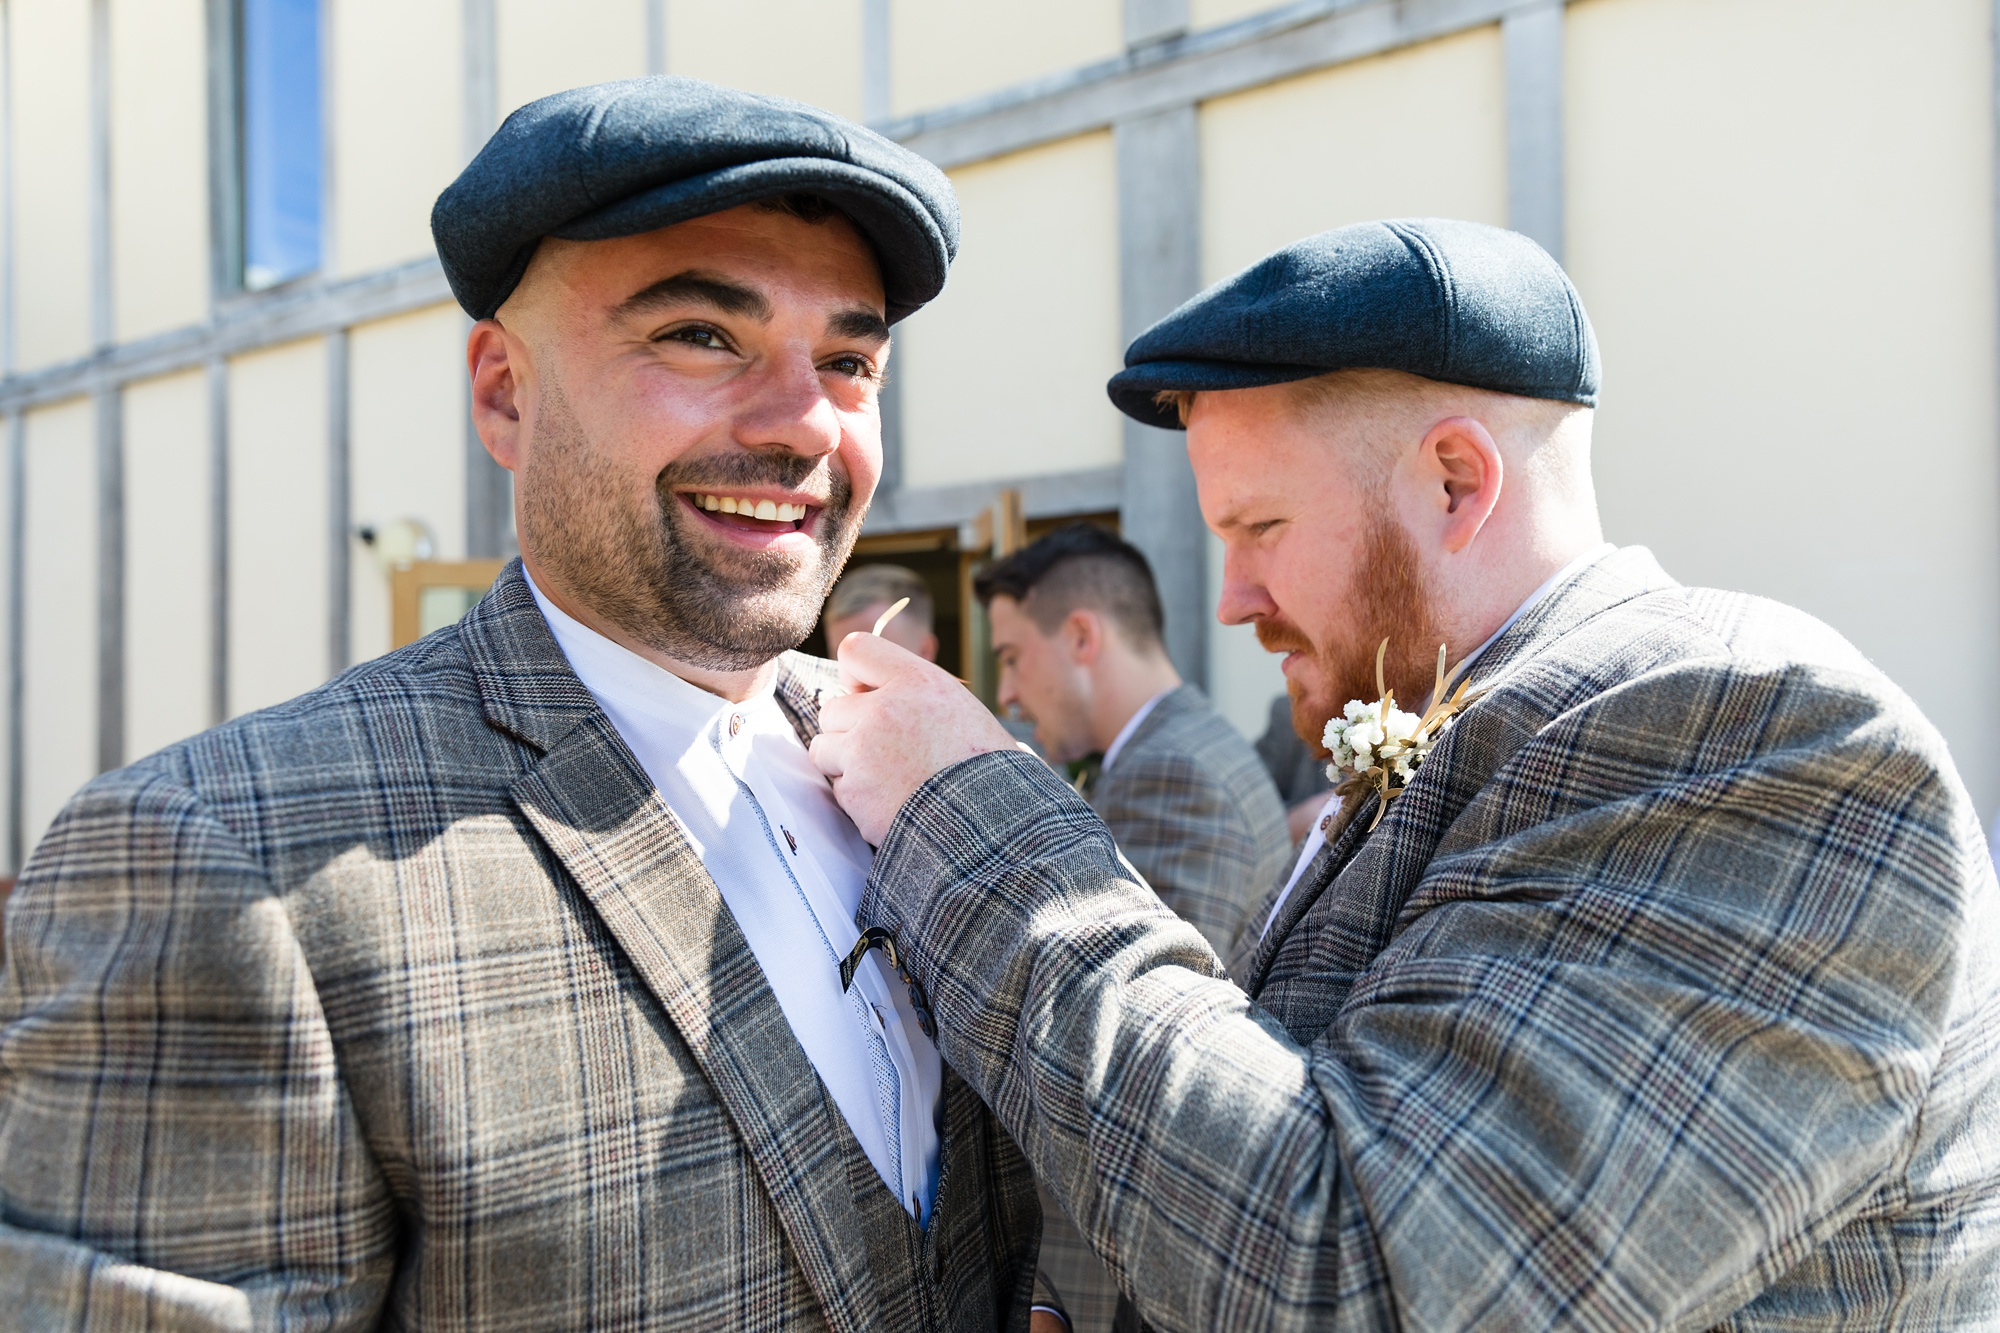 Groomsman helps groom put on buttonhole at Sandburn Hall wedding.